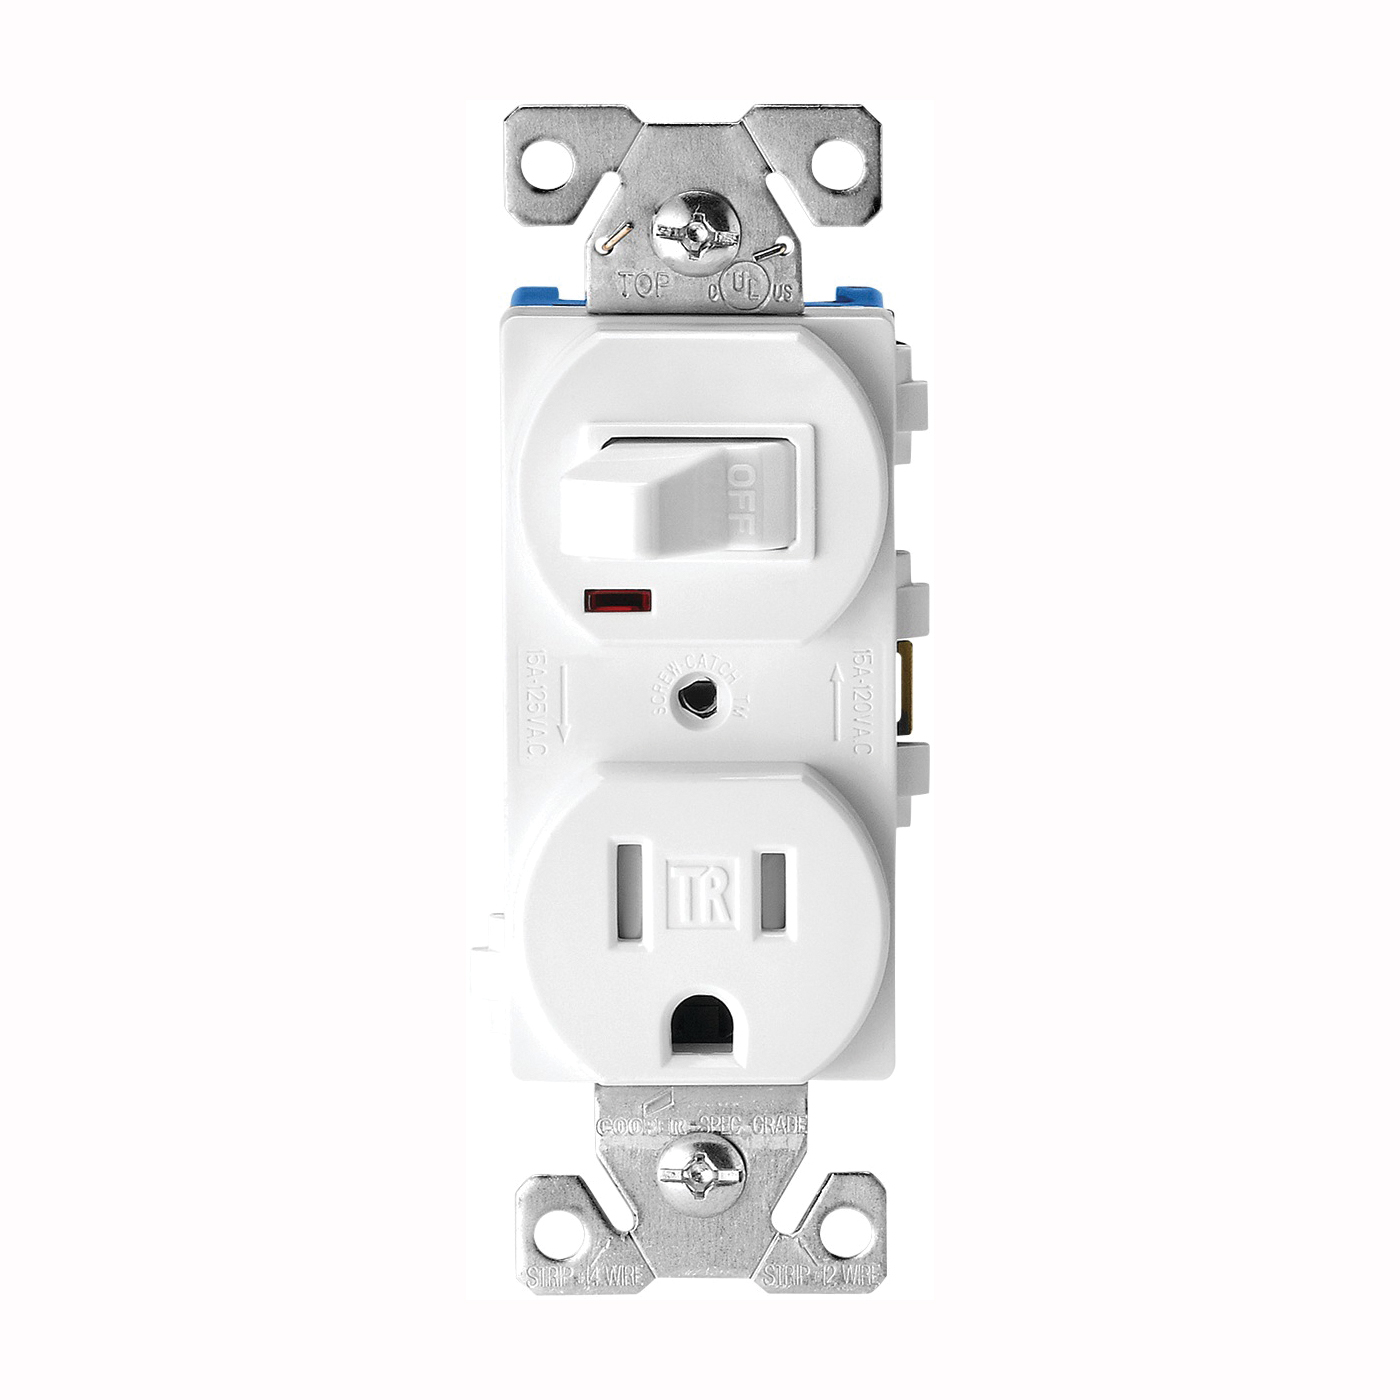 Picture of Eaton Cooper Wiring TR274W Heavy-Duty Combination Switch/Receptacle, 120 V Switch, 125 V Receptacle, 2-Pole